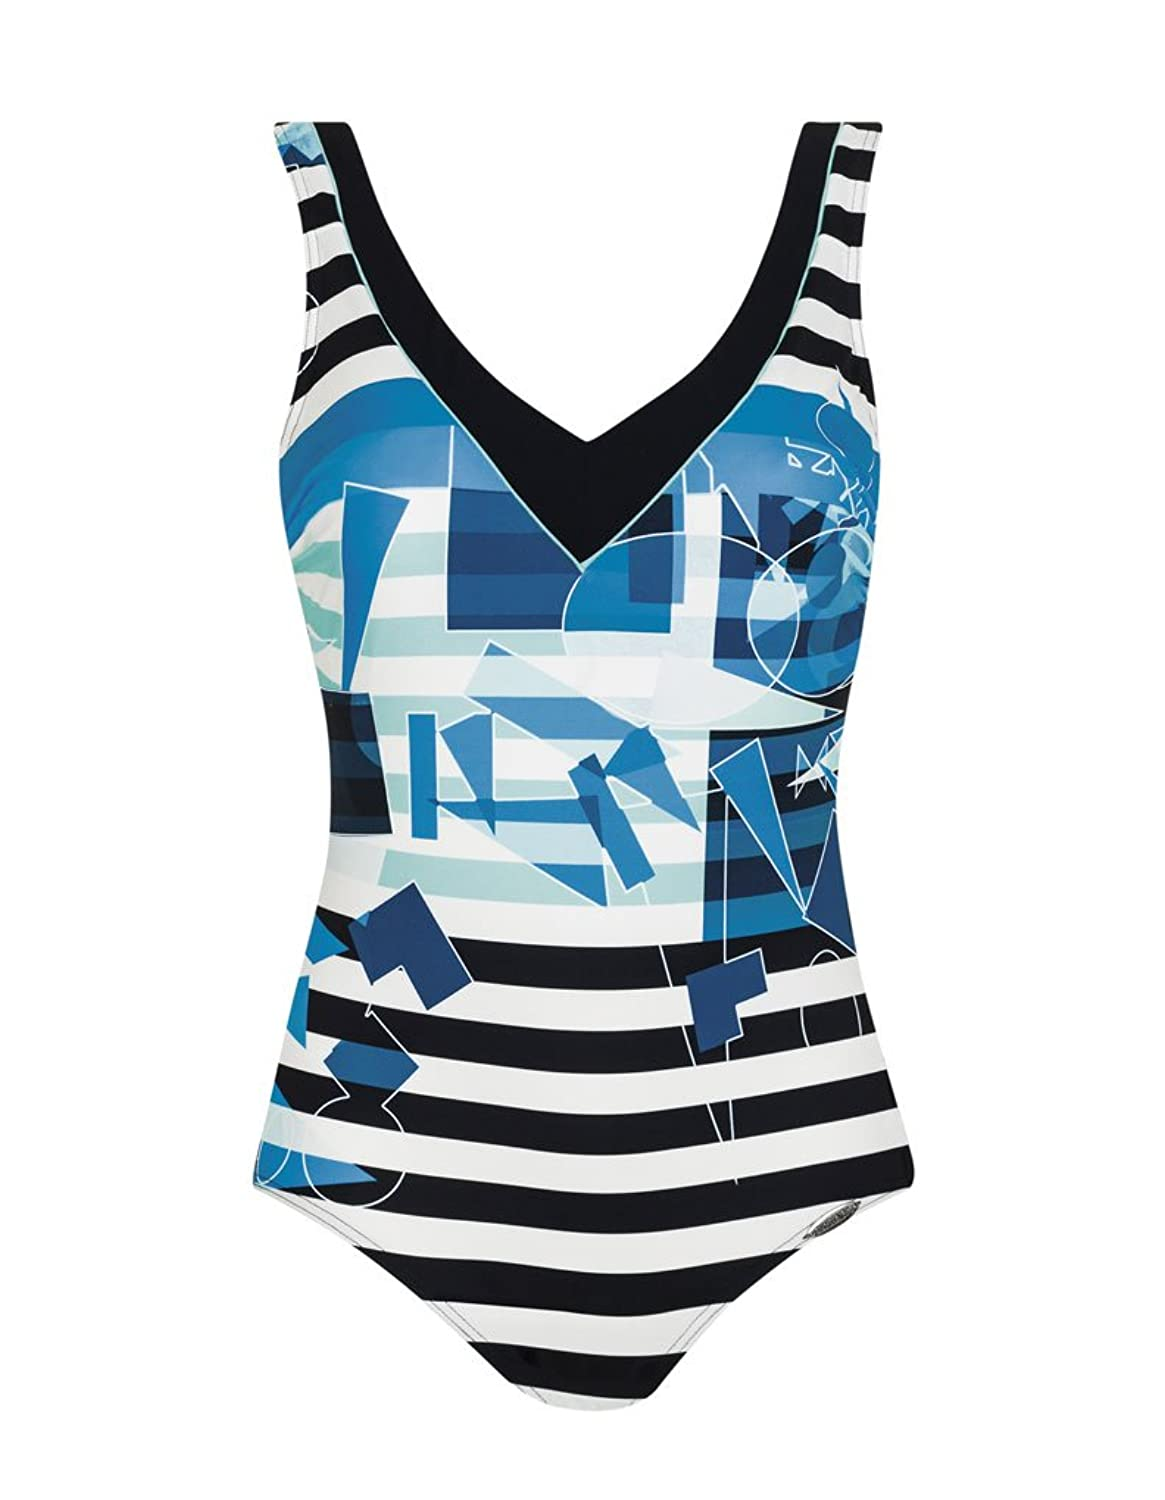 Sunflair 22372 Women's Tummy Control Shaping Black And White Stripe With Blue Geometric Print Non-Padded Non-Wired Swimsuit